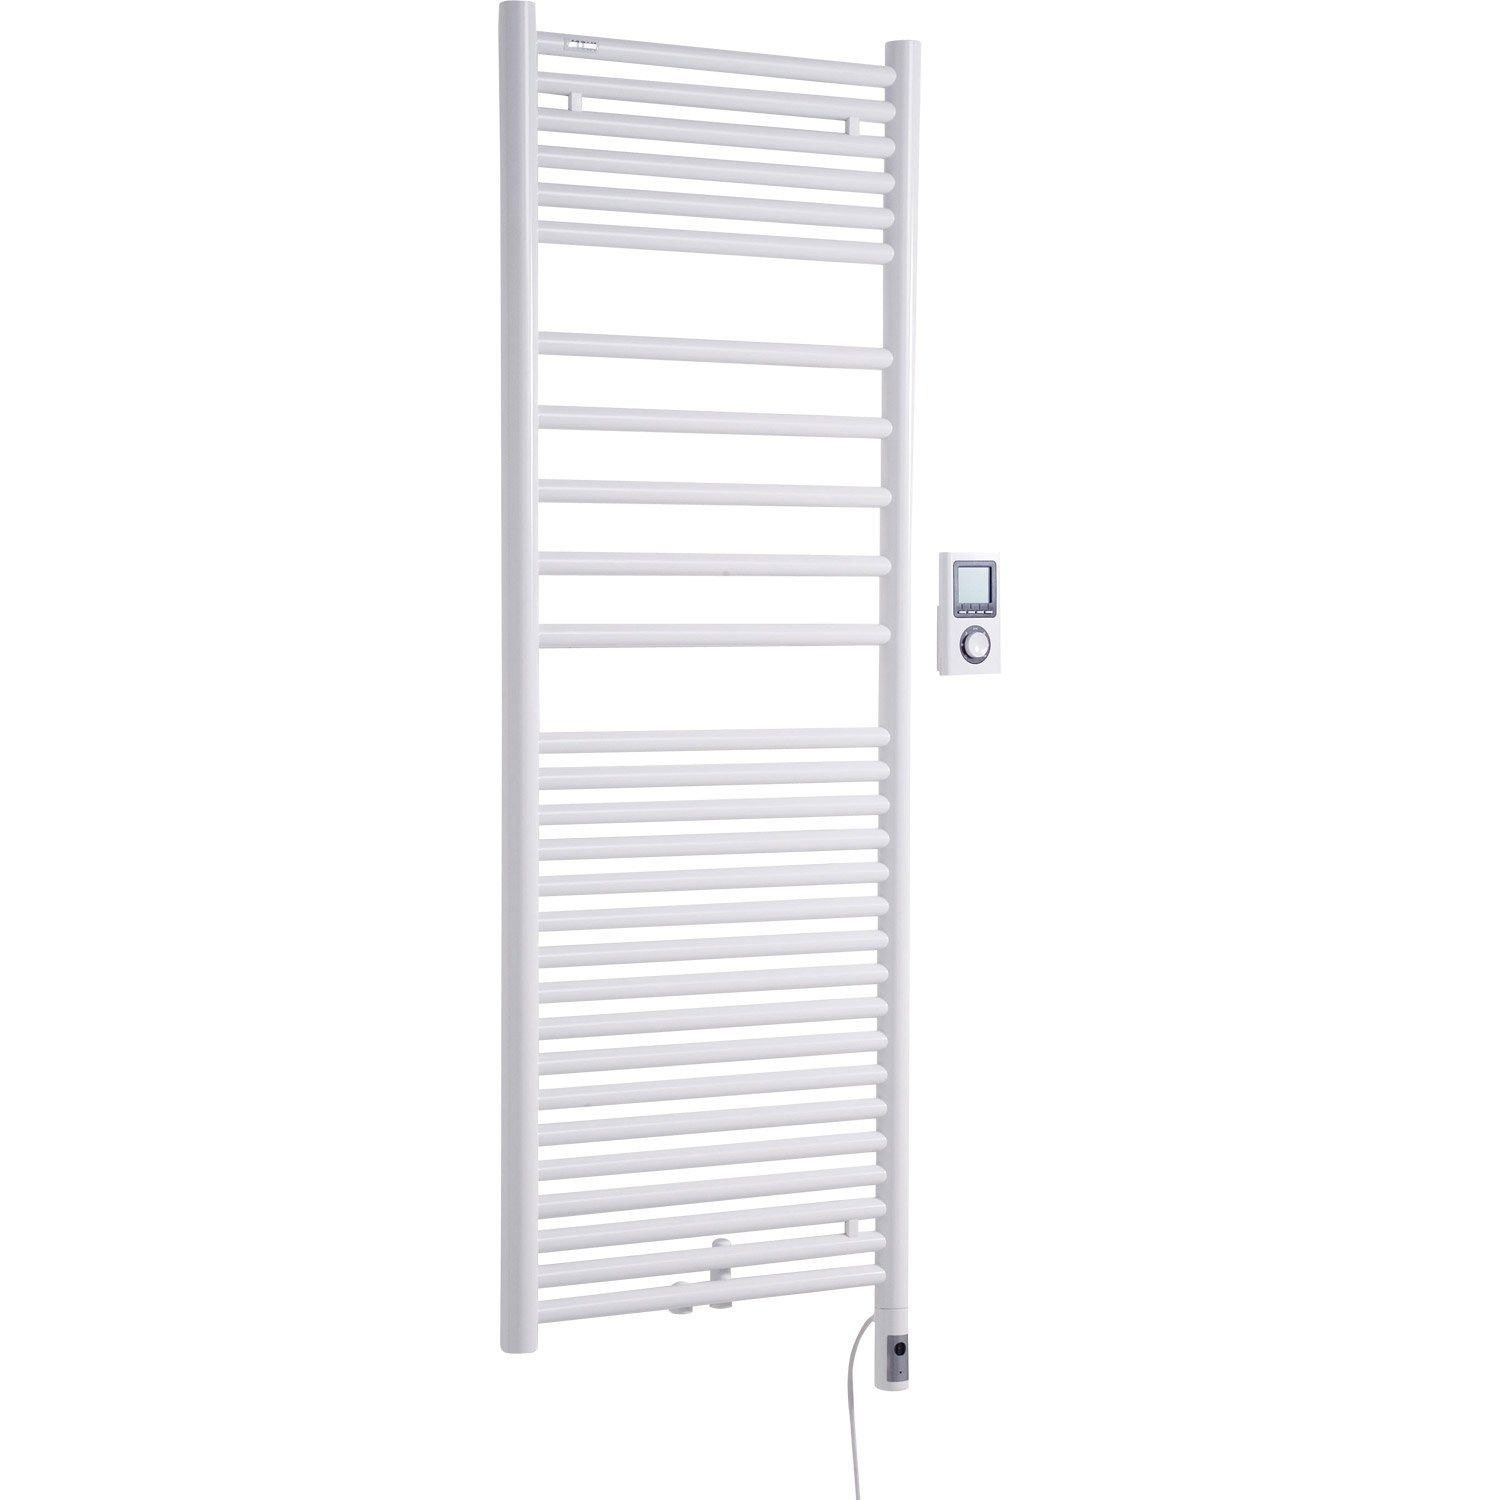 Beautiful Castorama Radiateur Chauffage Central Home Appliances Tall Cabinet Storage Parasol